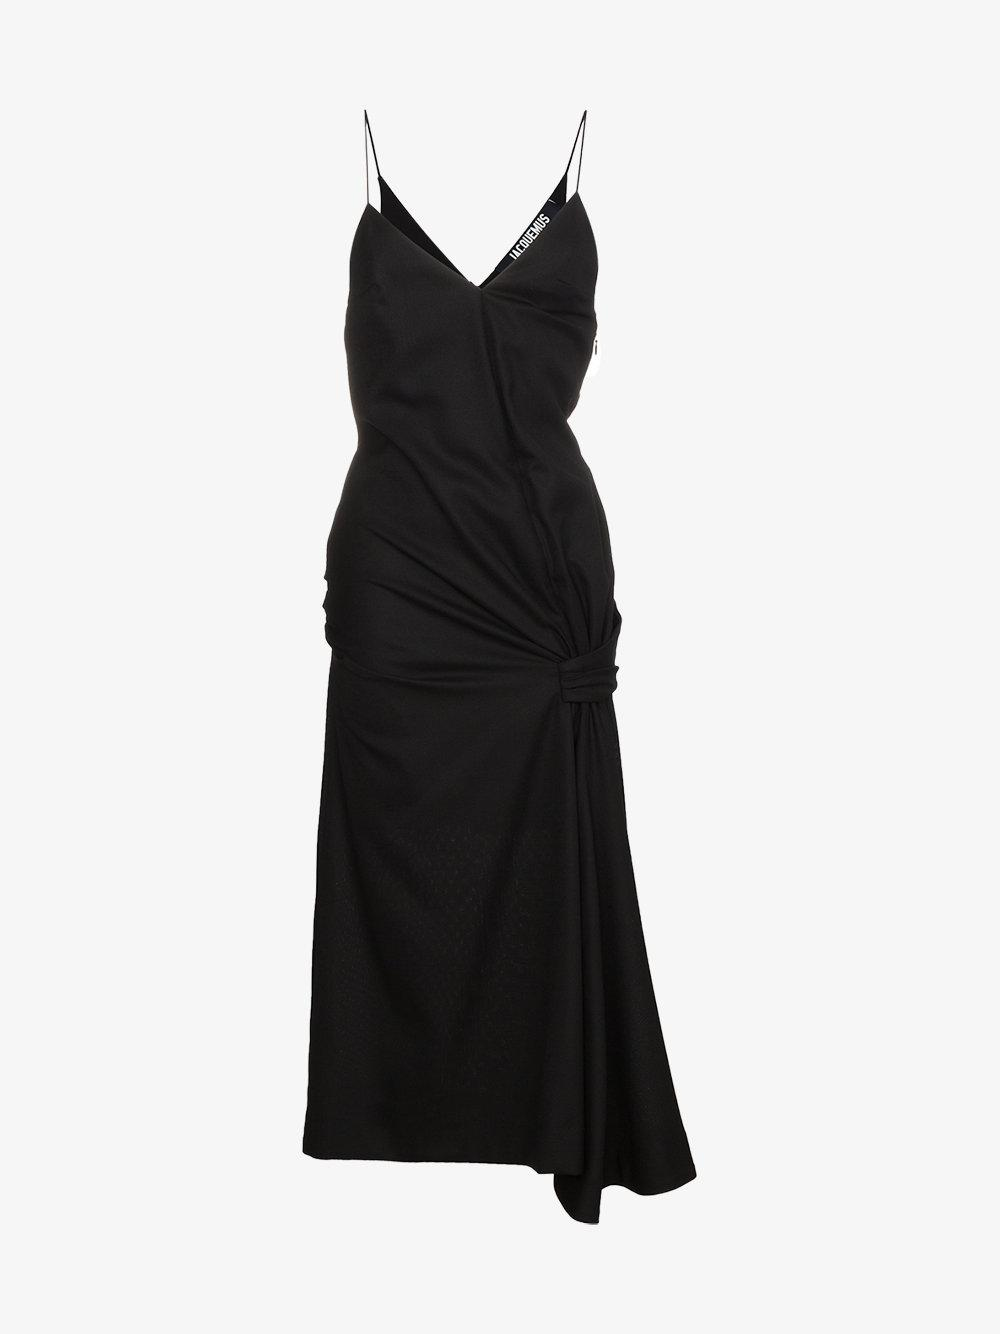 Hyper Online Cheap Websites sleeveless gathered dress - Black Jacquemus Big Discount Cheap Price Cost For Sale Limit Offer Cheap U32NUed